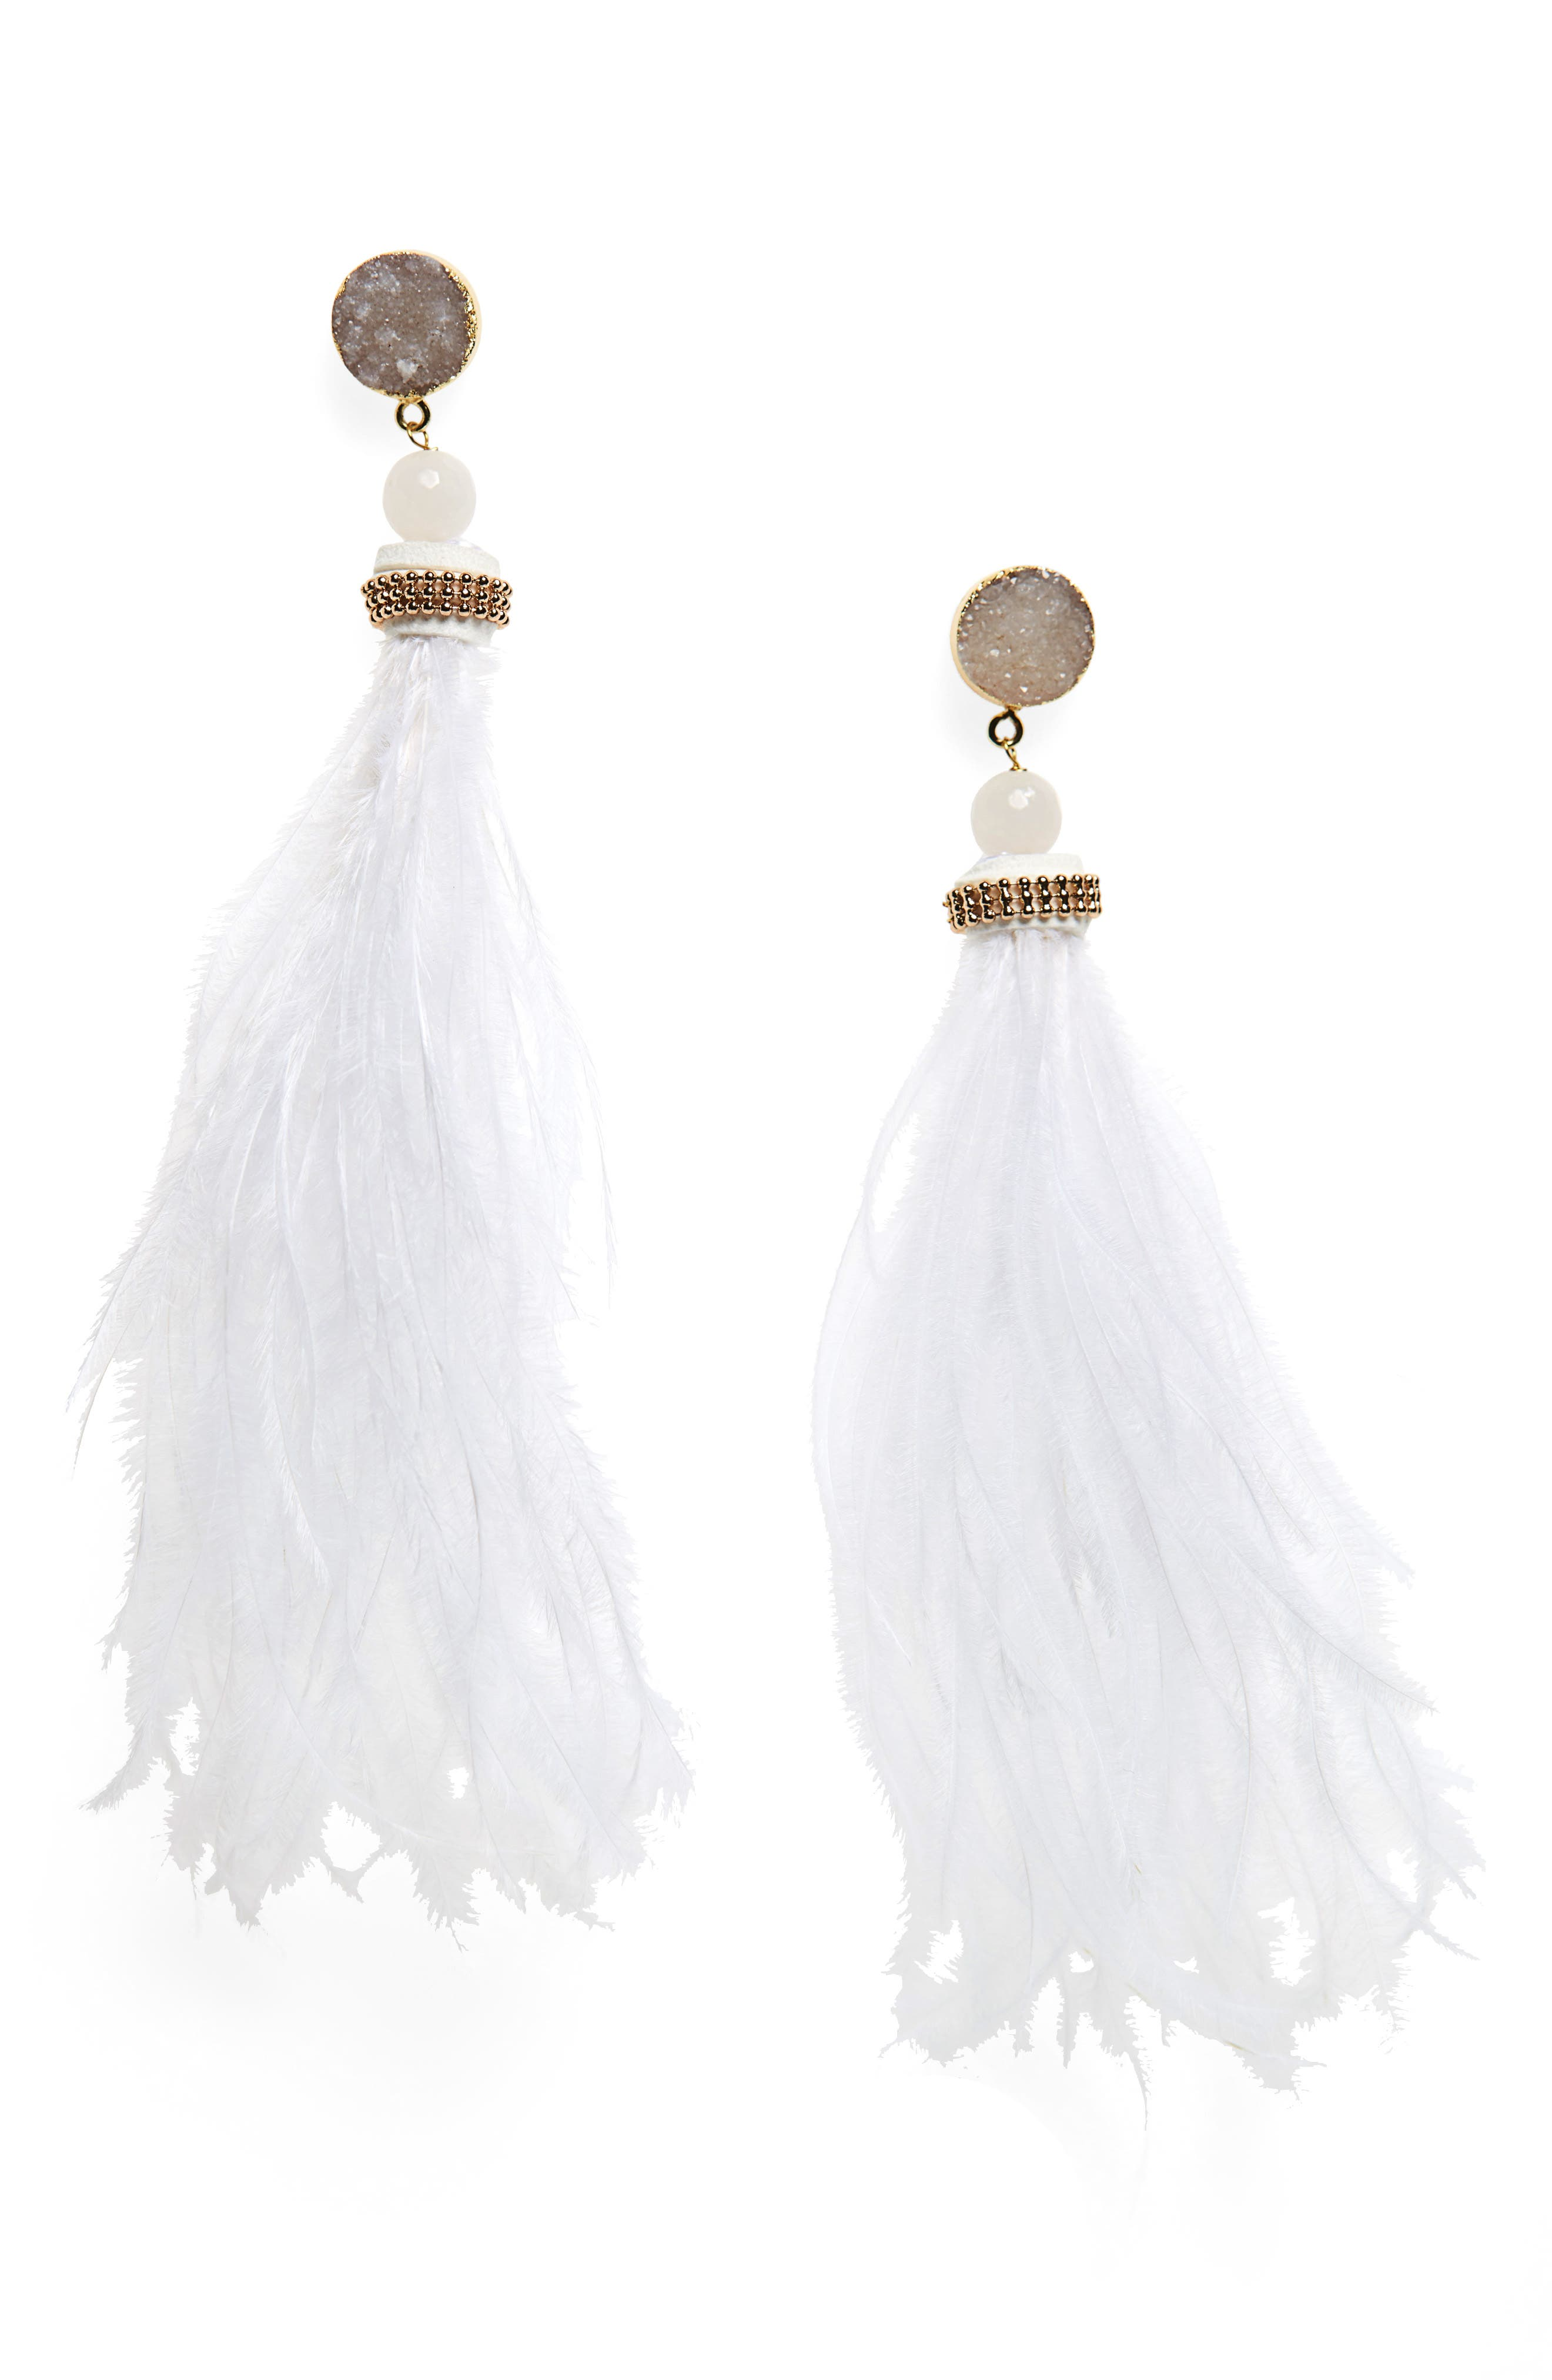 Stone & Feather Statement Earrings,                             Main thumbnail 1, color,                             White